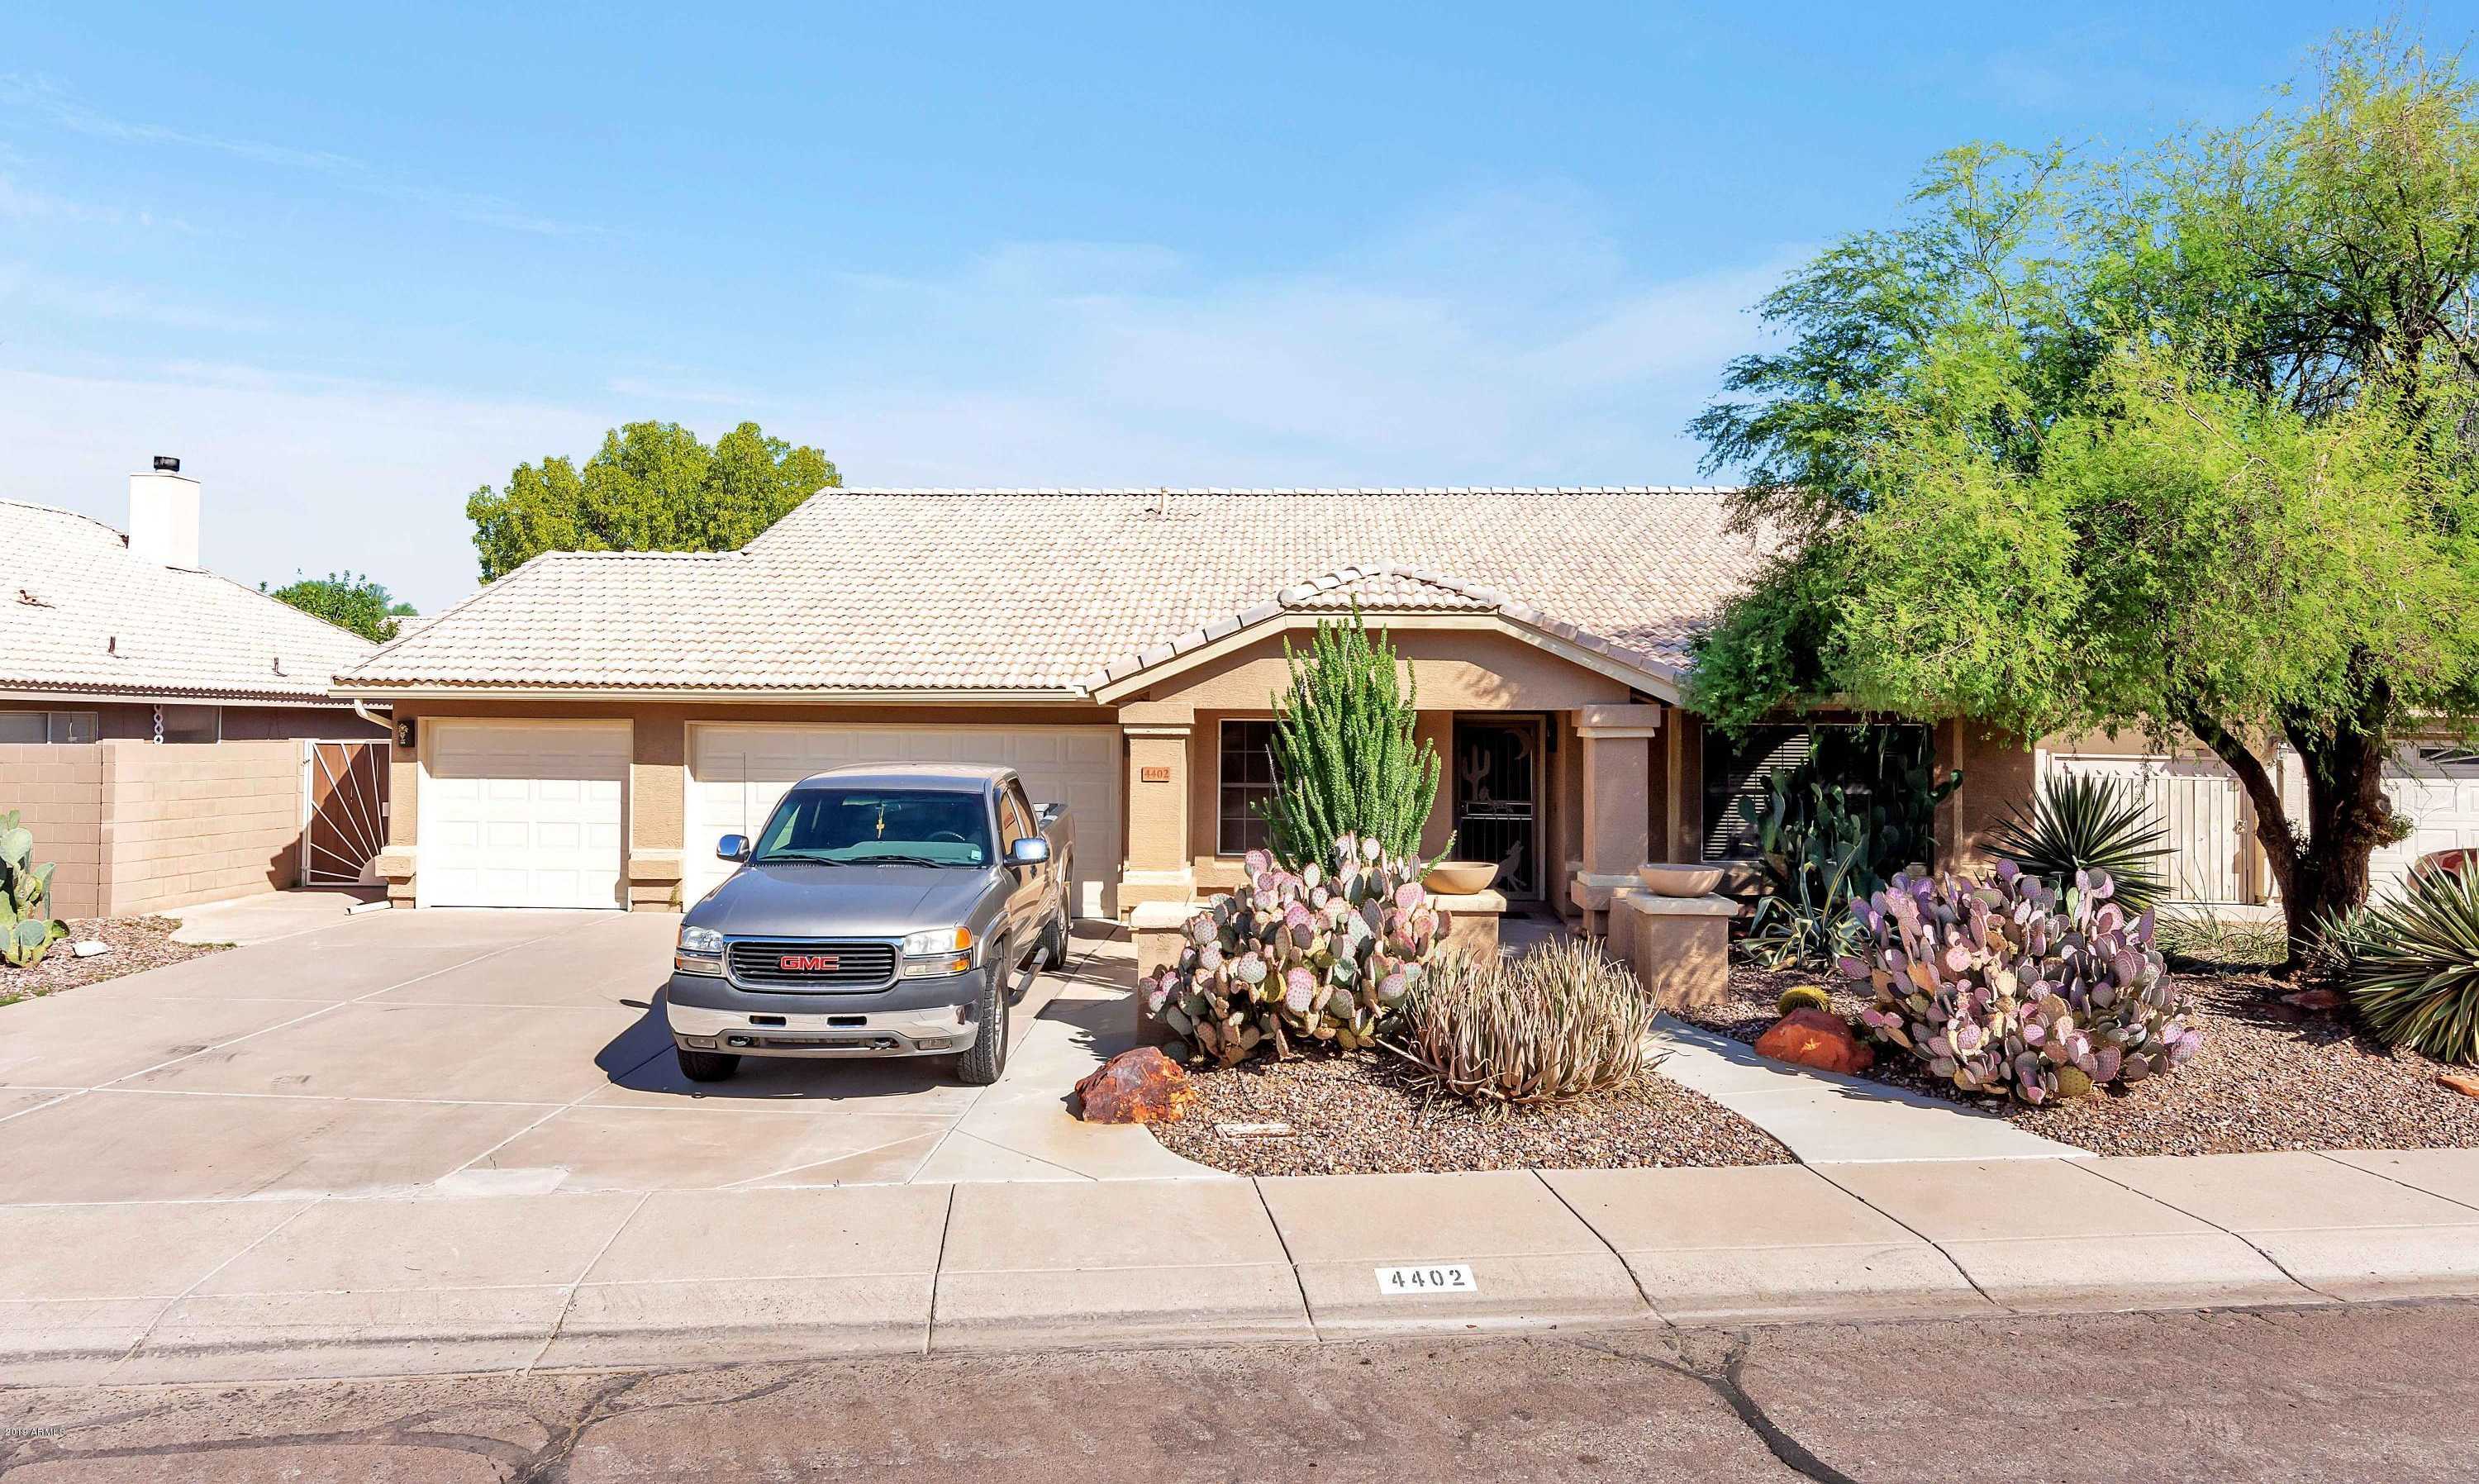 $385,000 - 3Br/2Ba - Home for Sale in Pinnacle Peak Crossing Lot 1-225 Tr A-i, Glendale